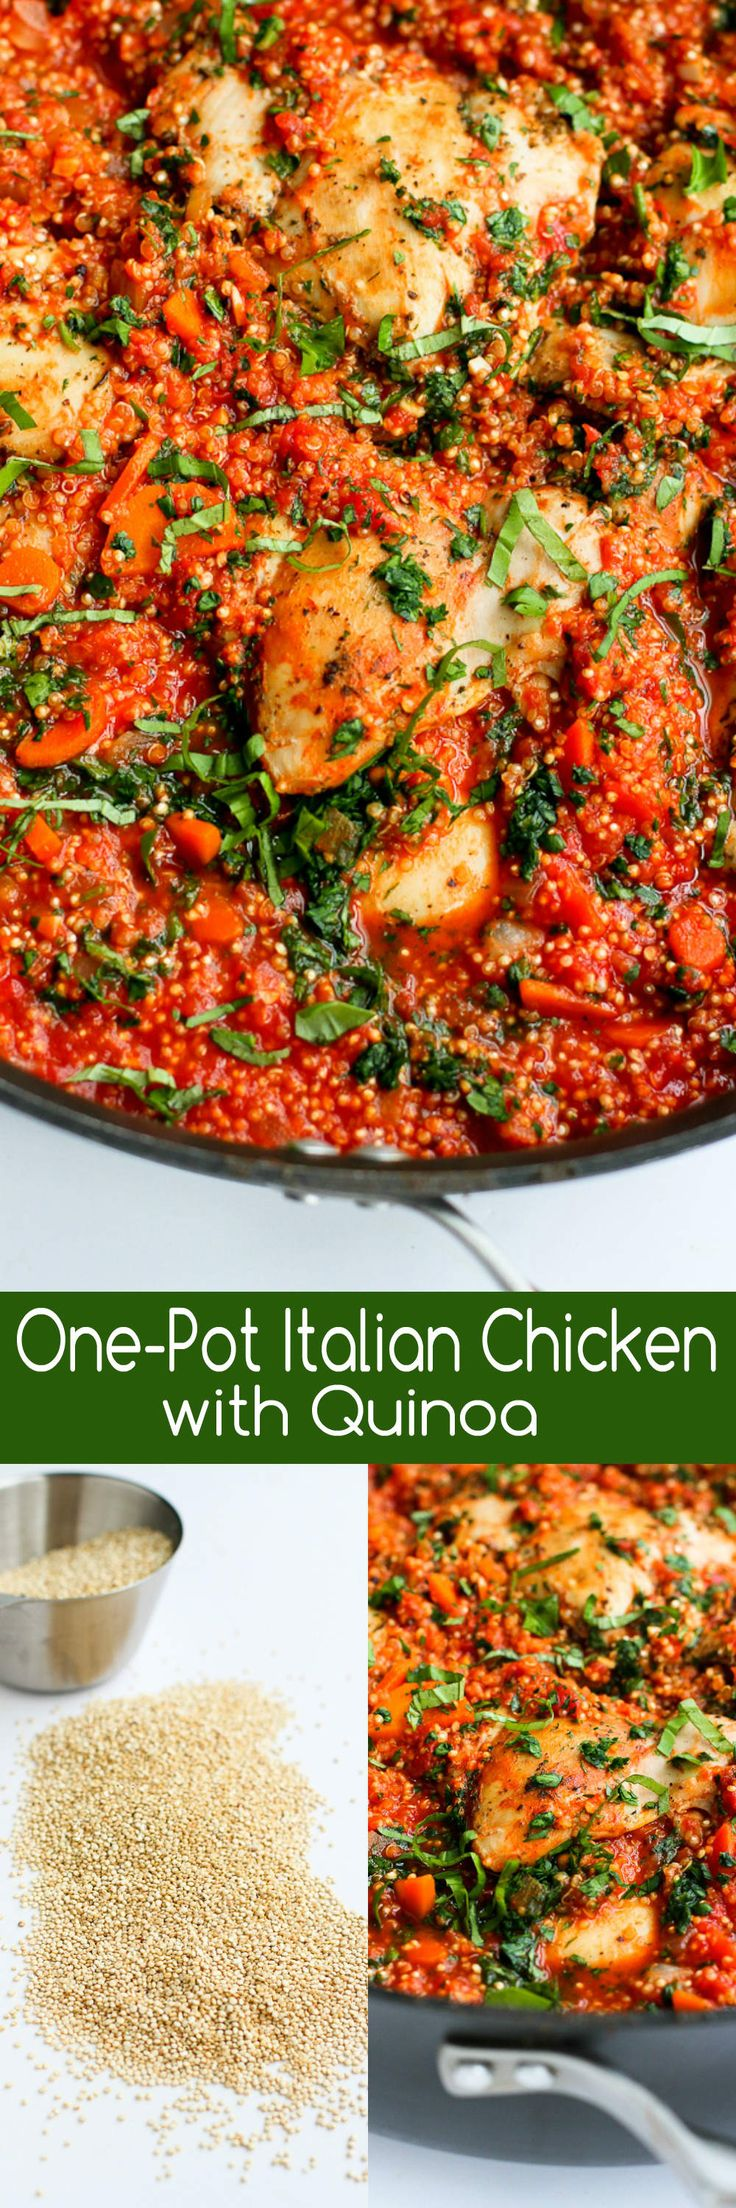 In this easy recipe, Italian flavored chicken, quinoa and tomato sauce come together in one pot for a healthy meal with minimal clean-up. 264 calories and 5 Weight Watchers SmartPoints